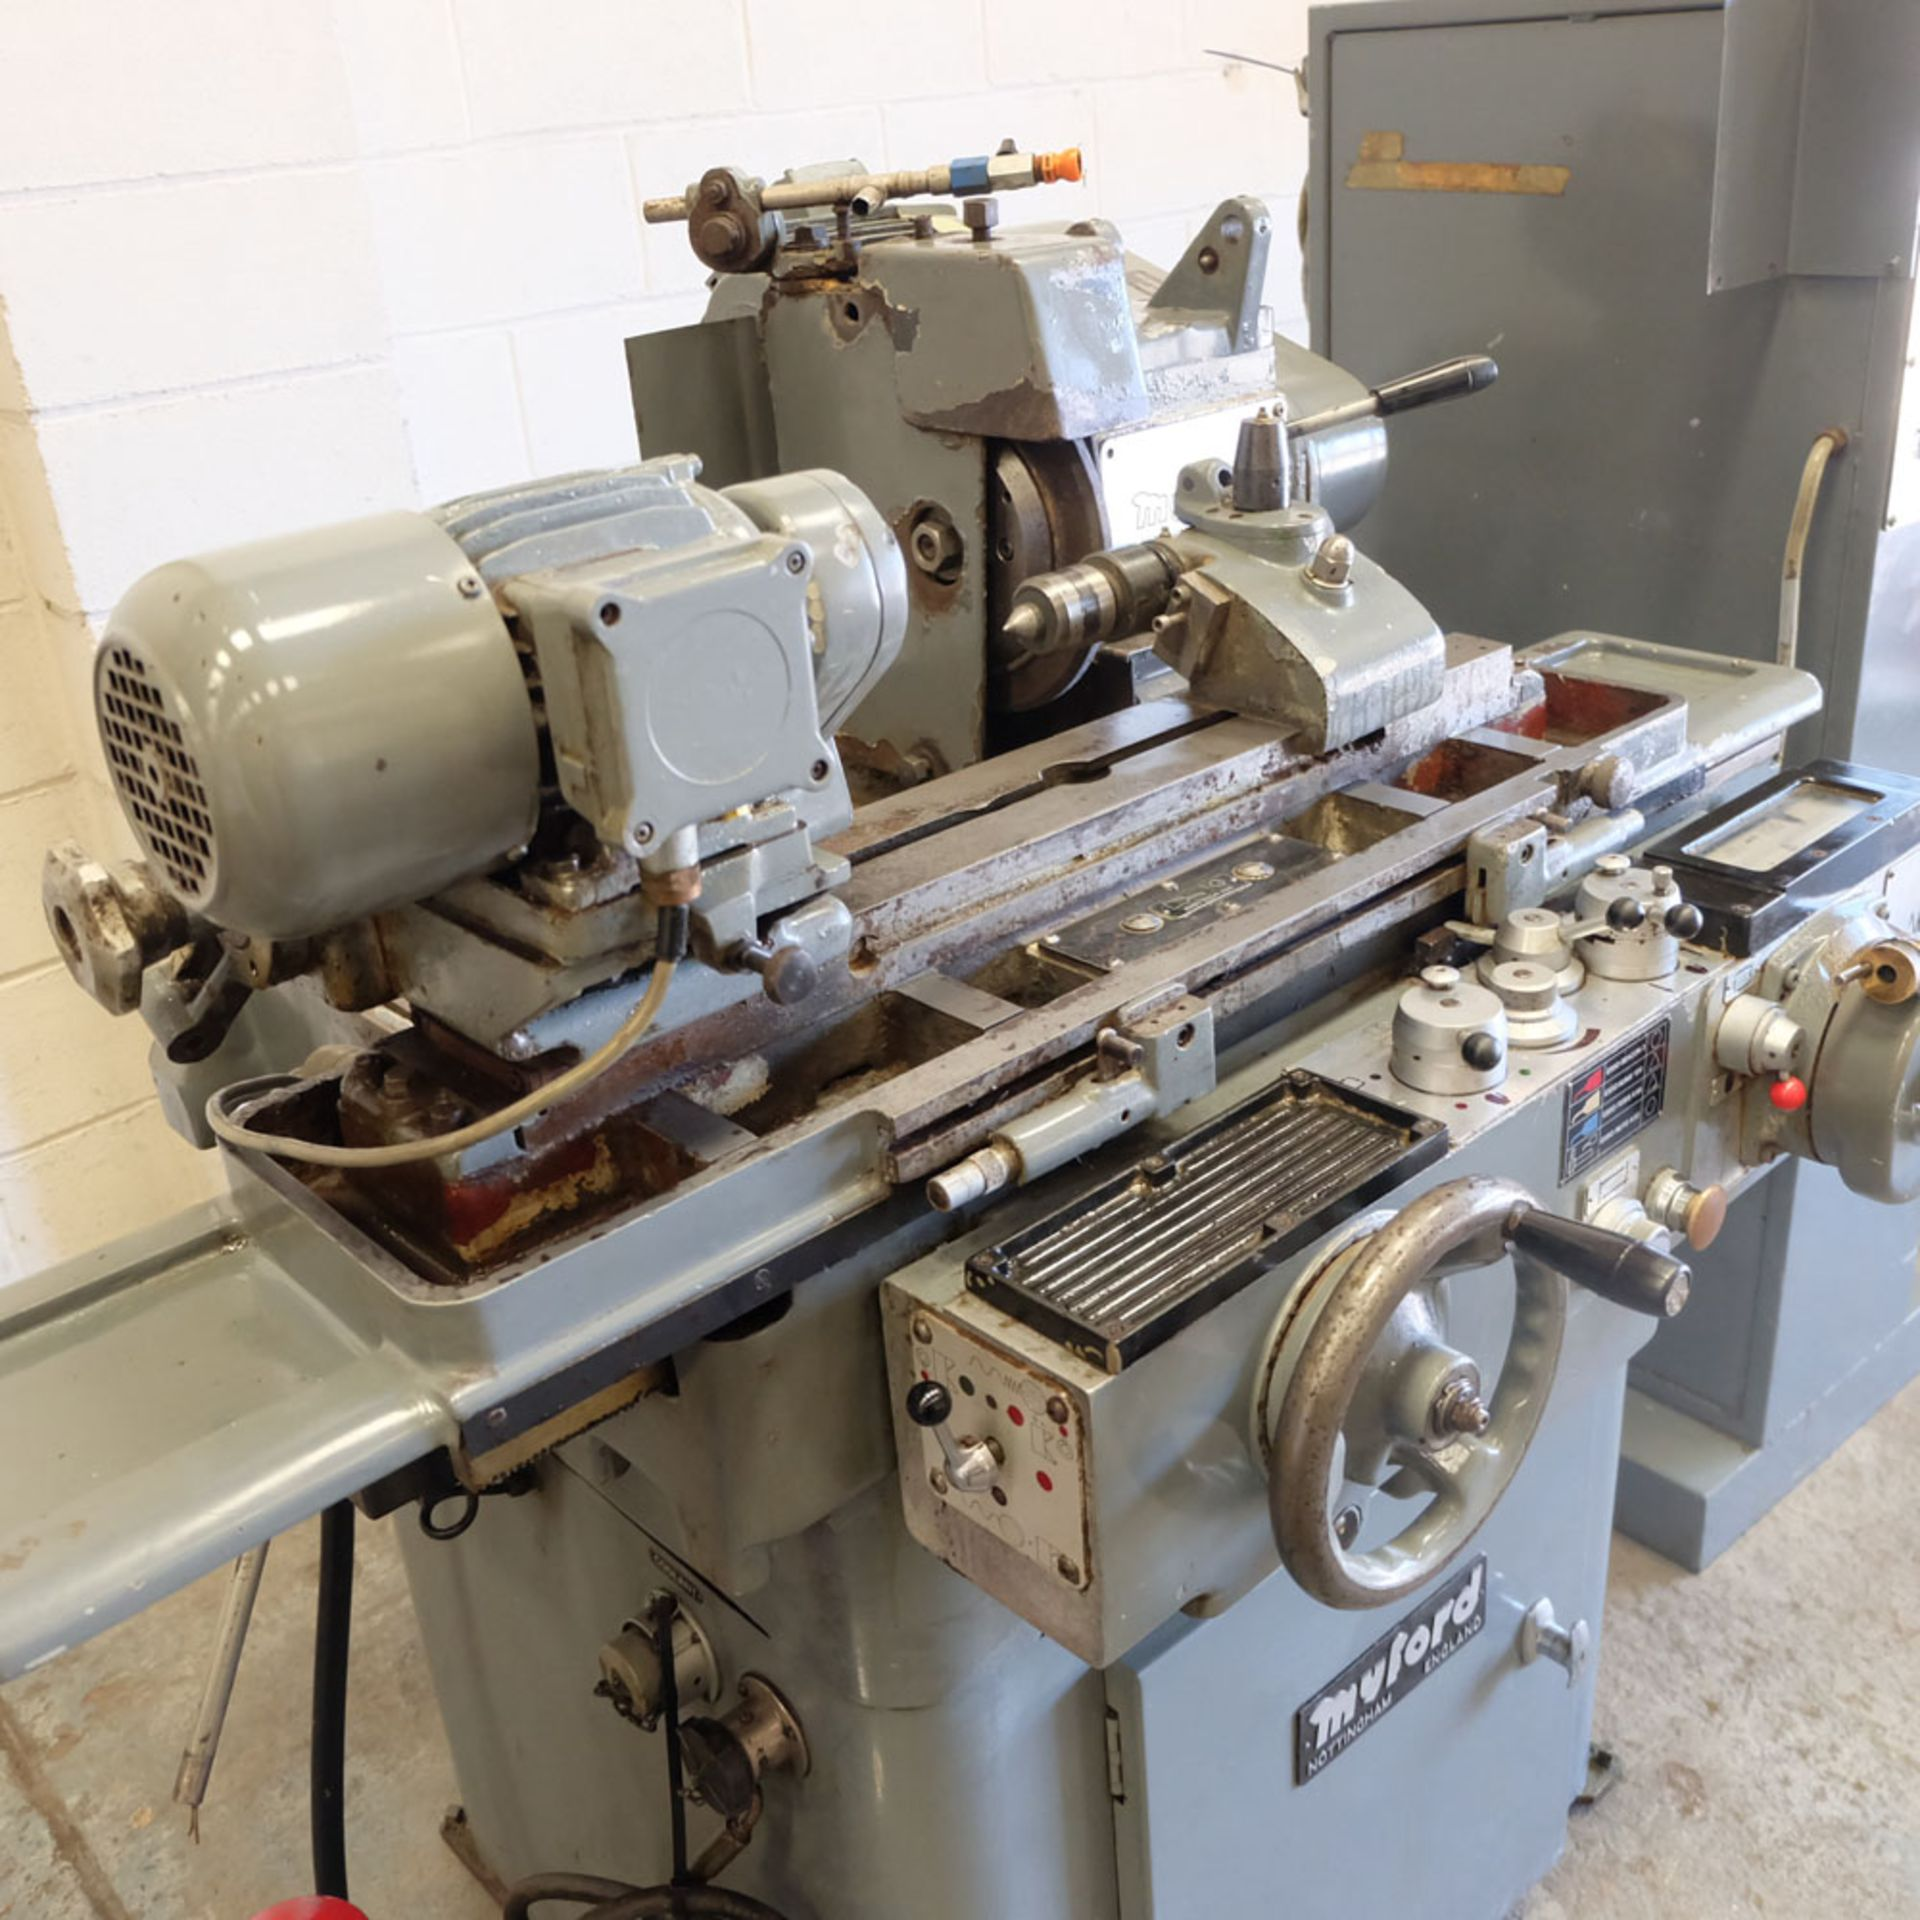 Myford Model MG12-HPT Automatic Cycle Traverse & Plunge Grinder. - Image 2 of 8